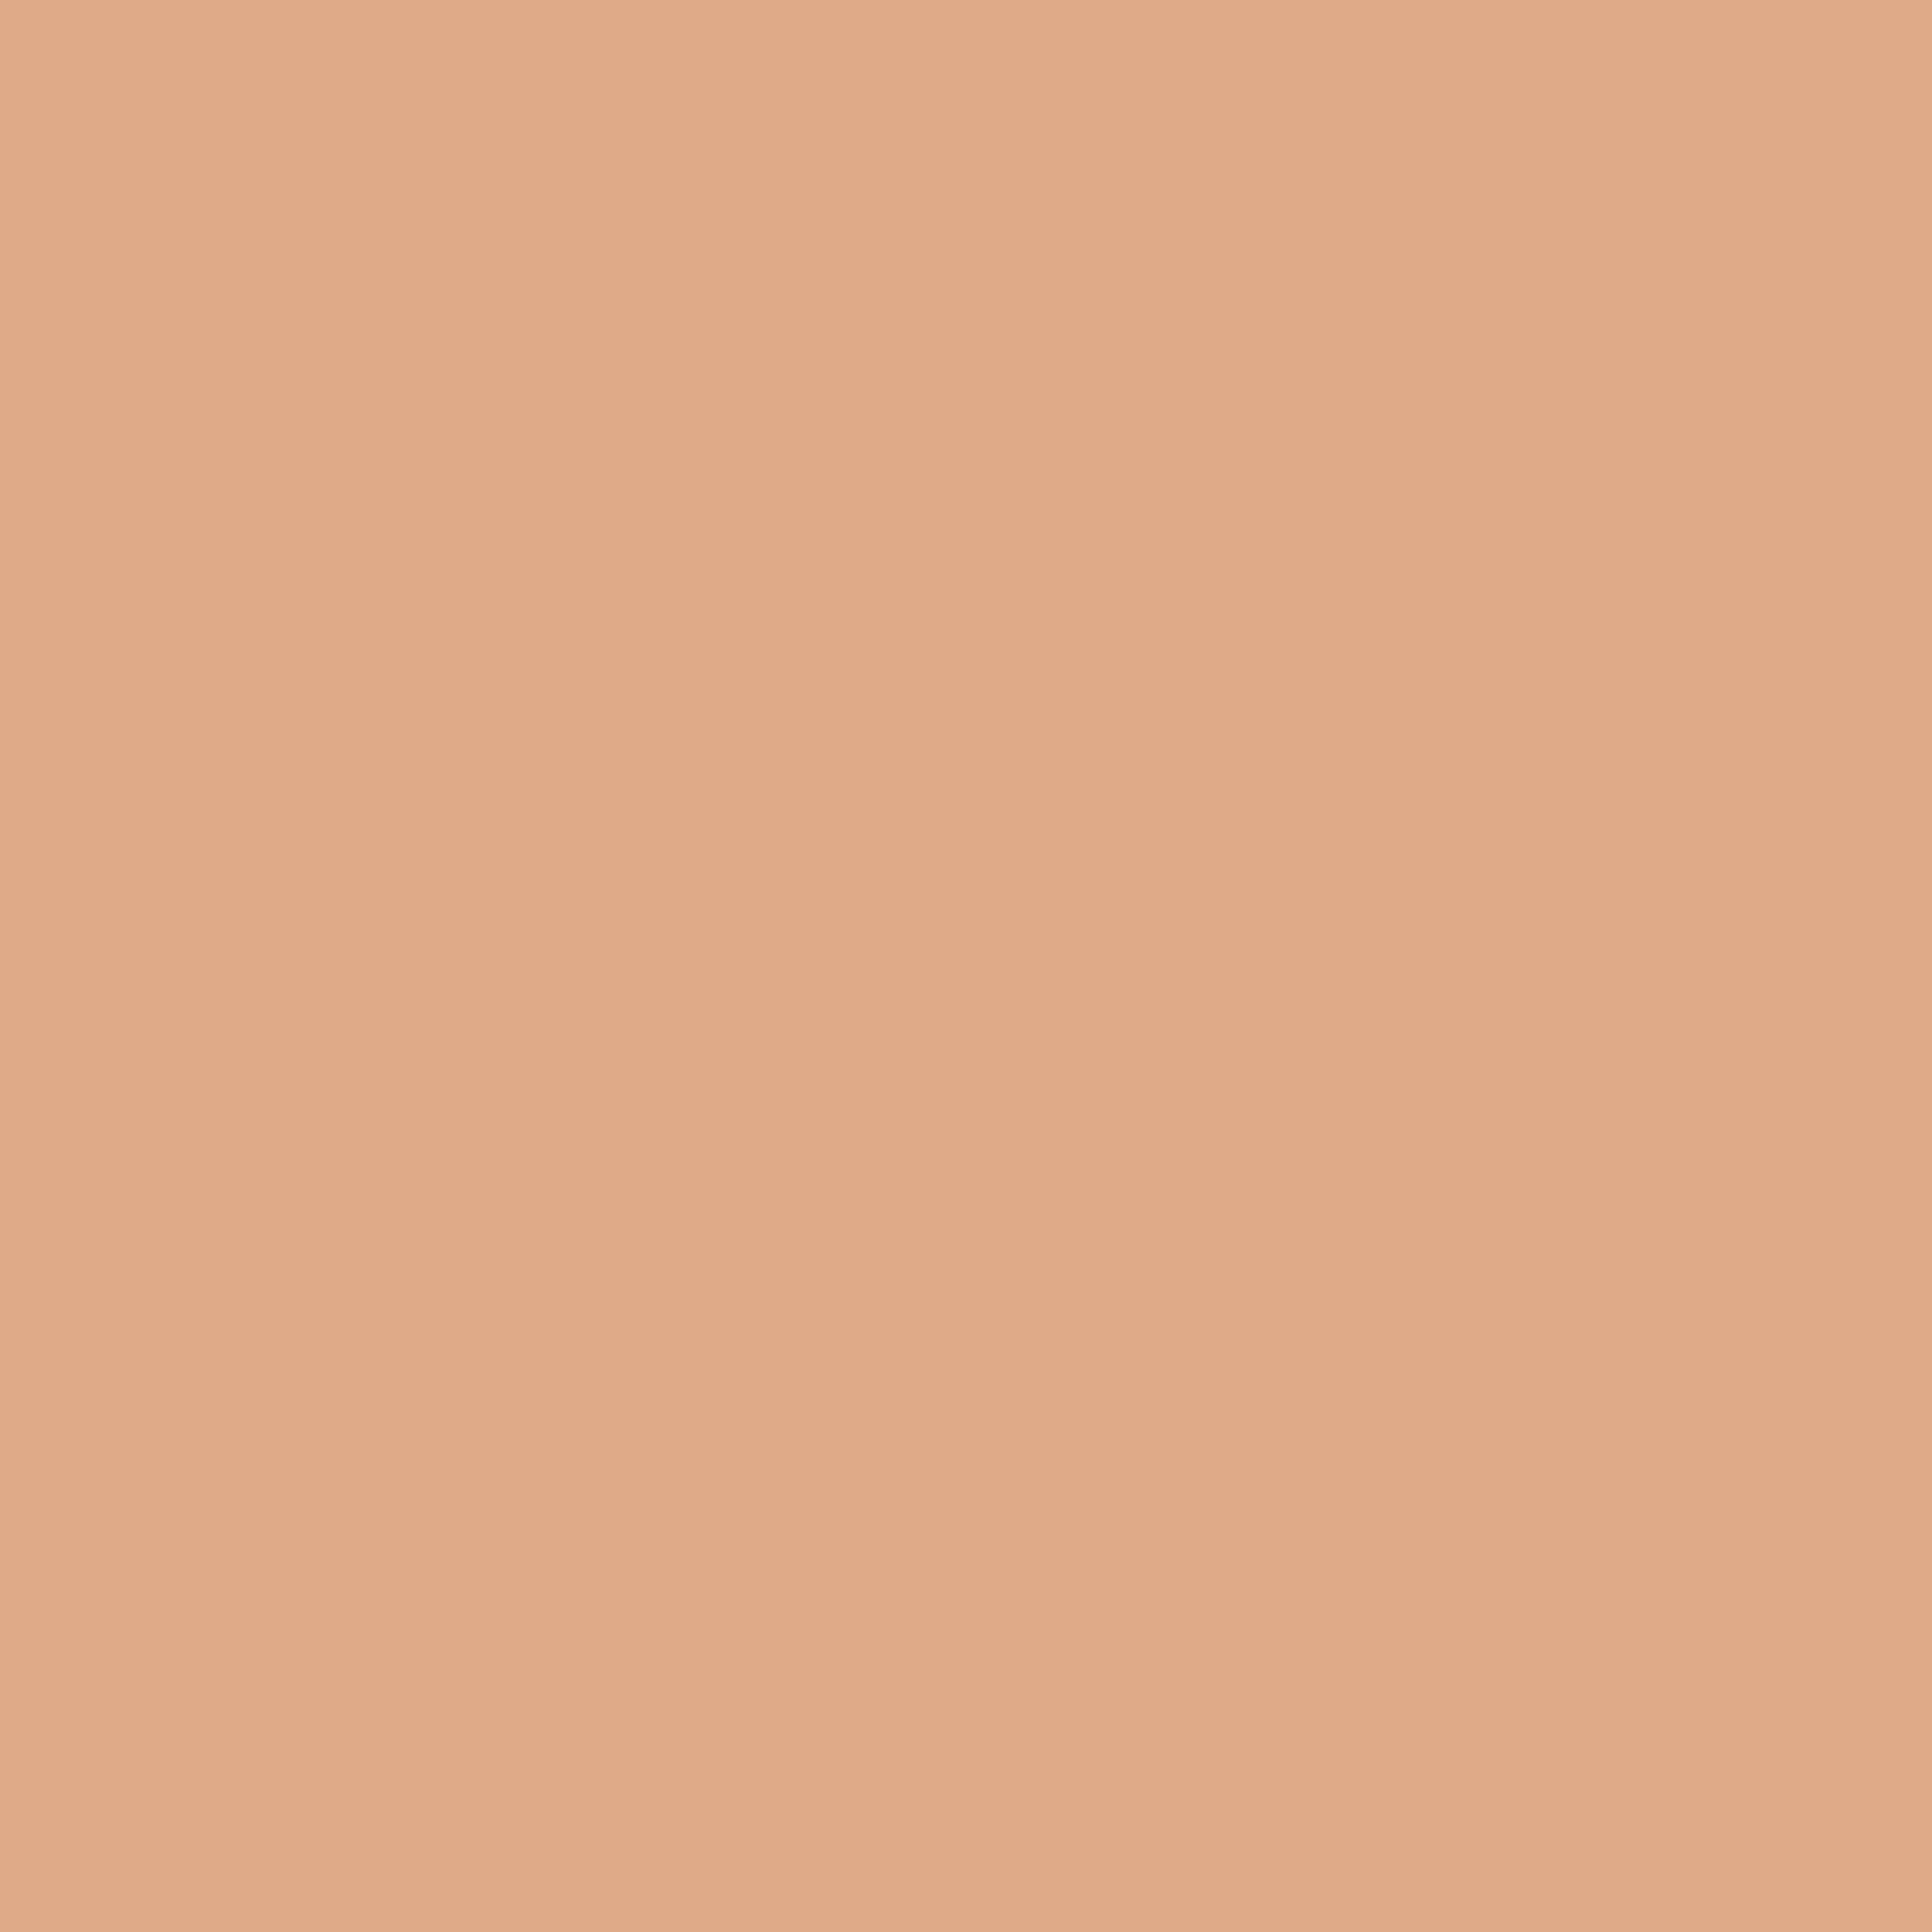 2048x2048 Tumbleweed Solid Color Background